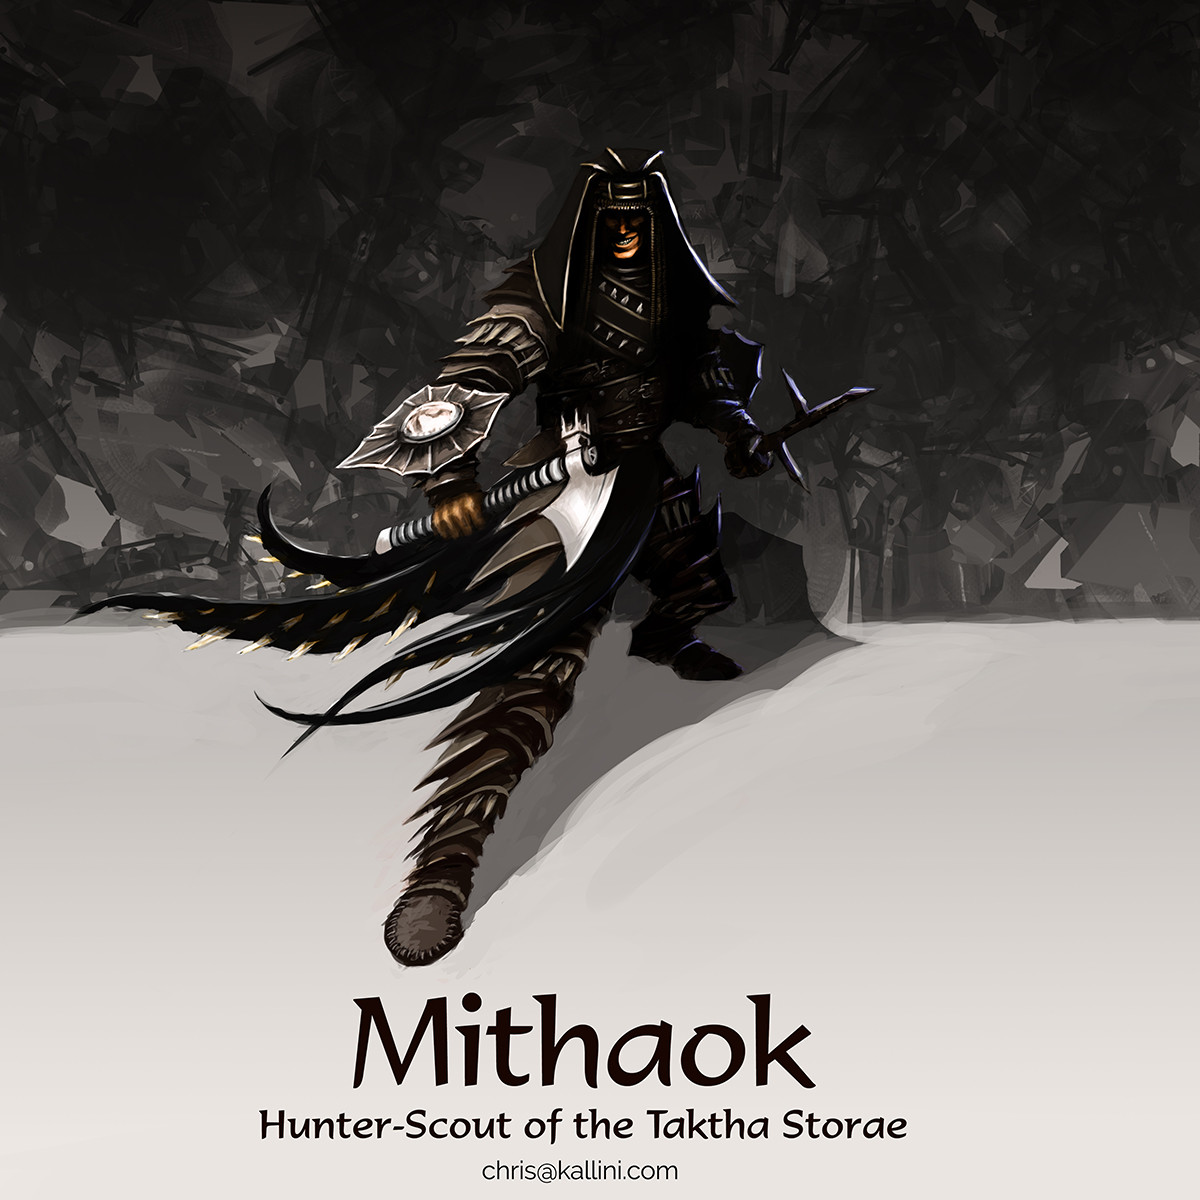 Mithaok, Hunter-Scout of the Taktha Storae